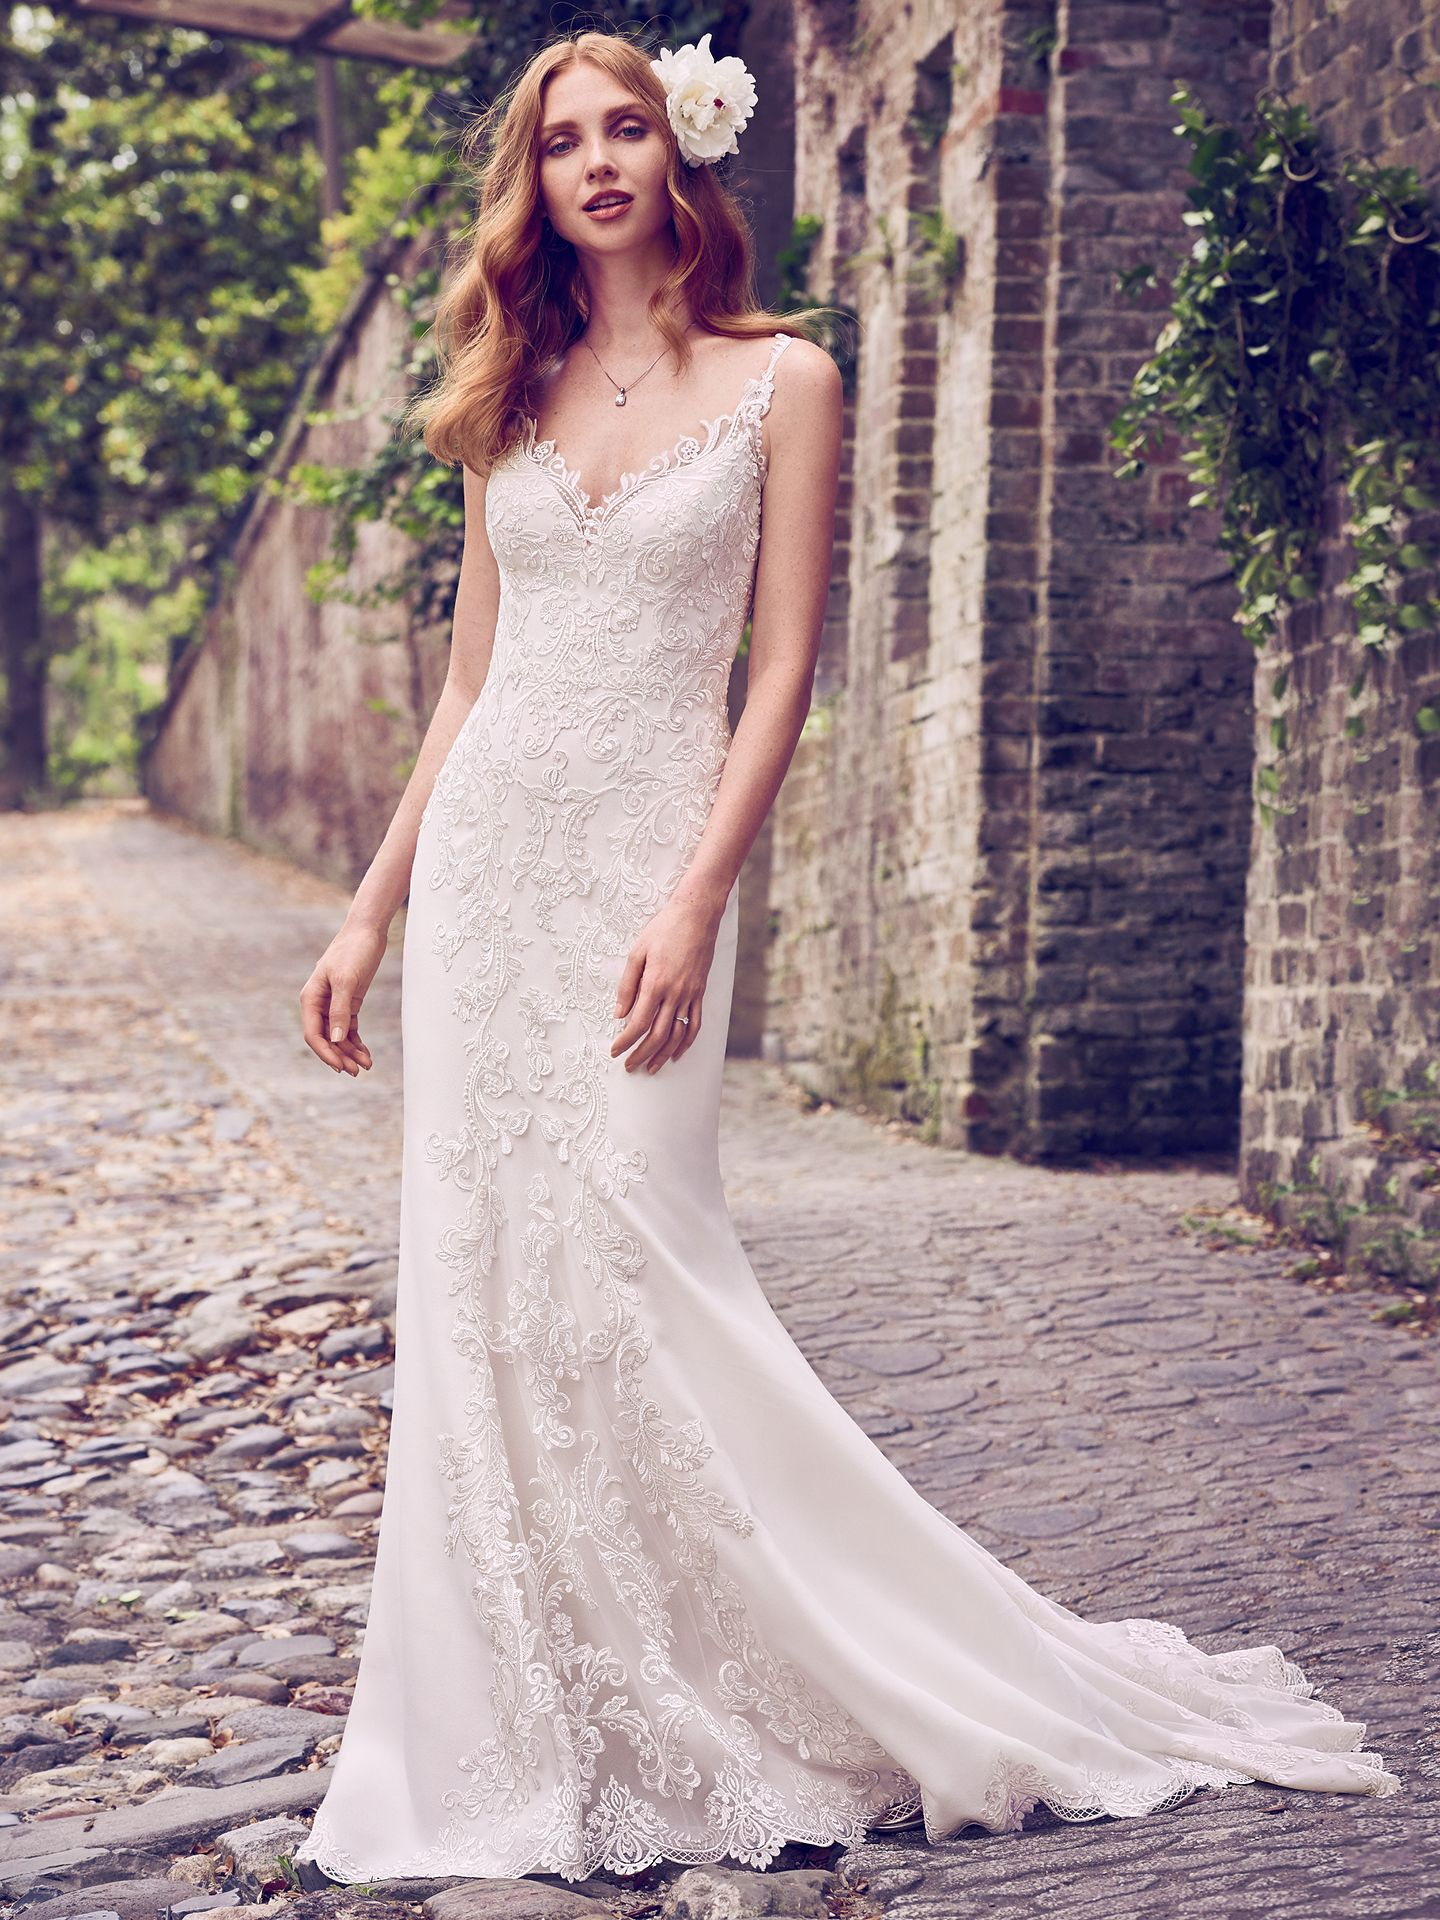 The Latest Wedding Dress Trends for Engagement Season 2018 - Kiandra wedding dress with Jersey lining for a luxe, breezy and figure-flattering fit.